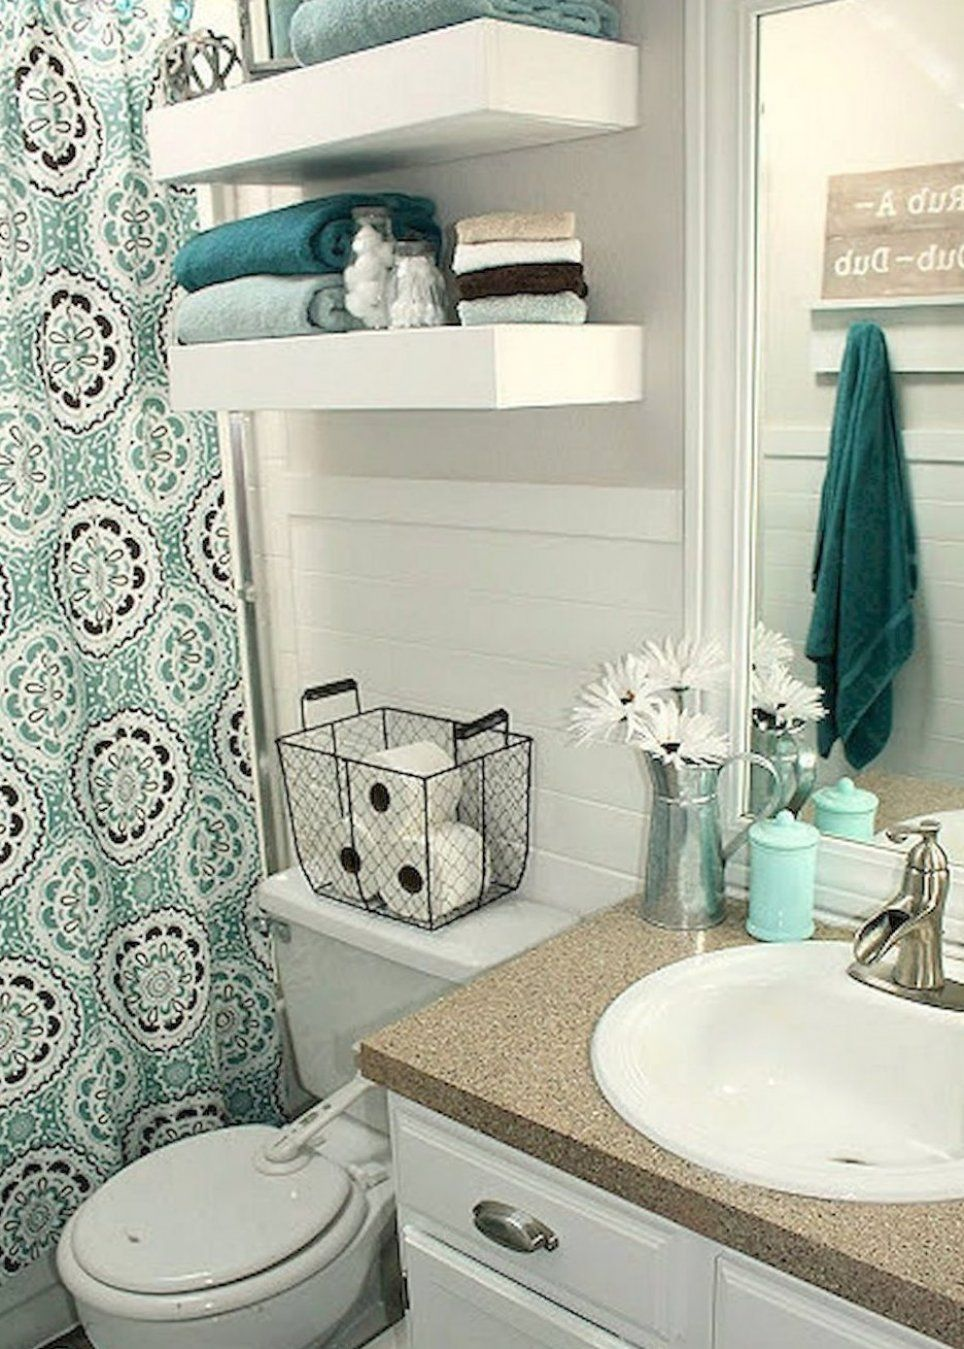 Gorgeous 30 Diy Small Apartment Decorating Ideas On A Diyhomedecor Diydecor Diyhomedecorea In 2020 Bathroom Decor Small Bathroom Decor Small Apartment Bathroom